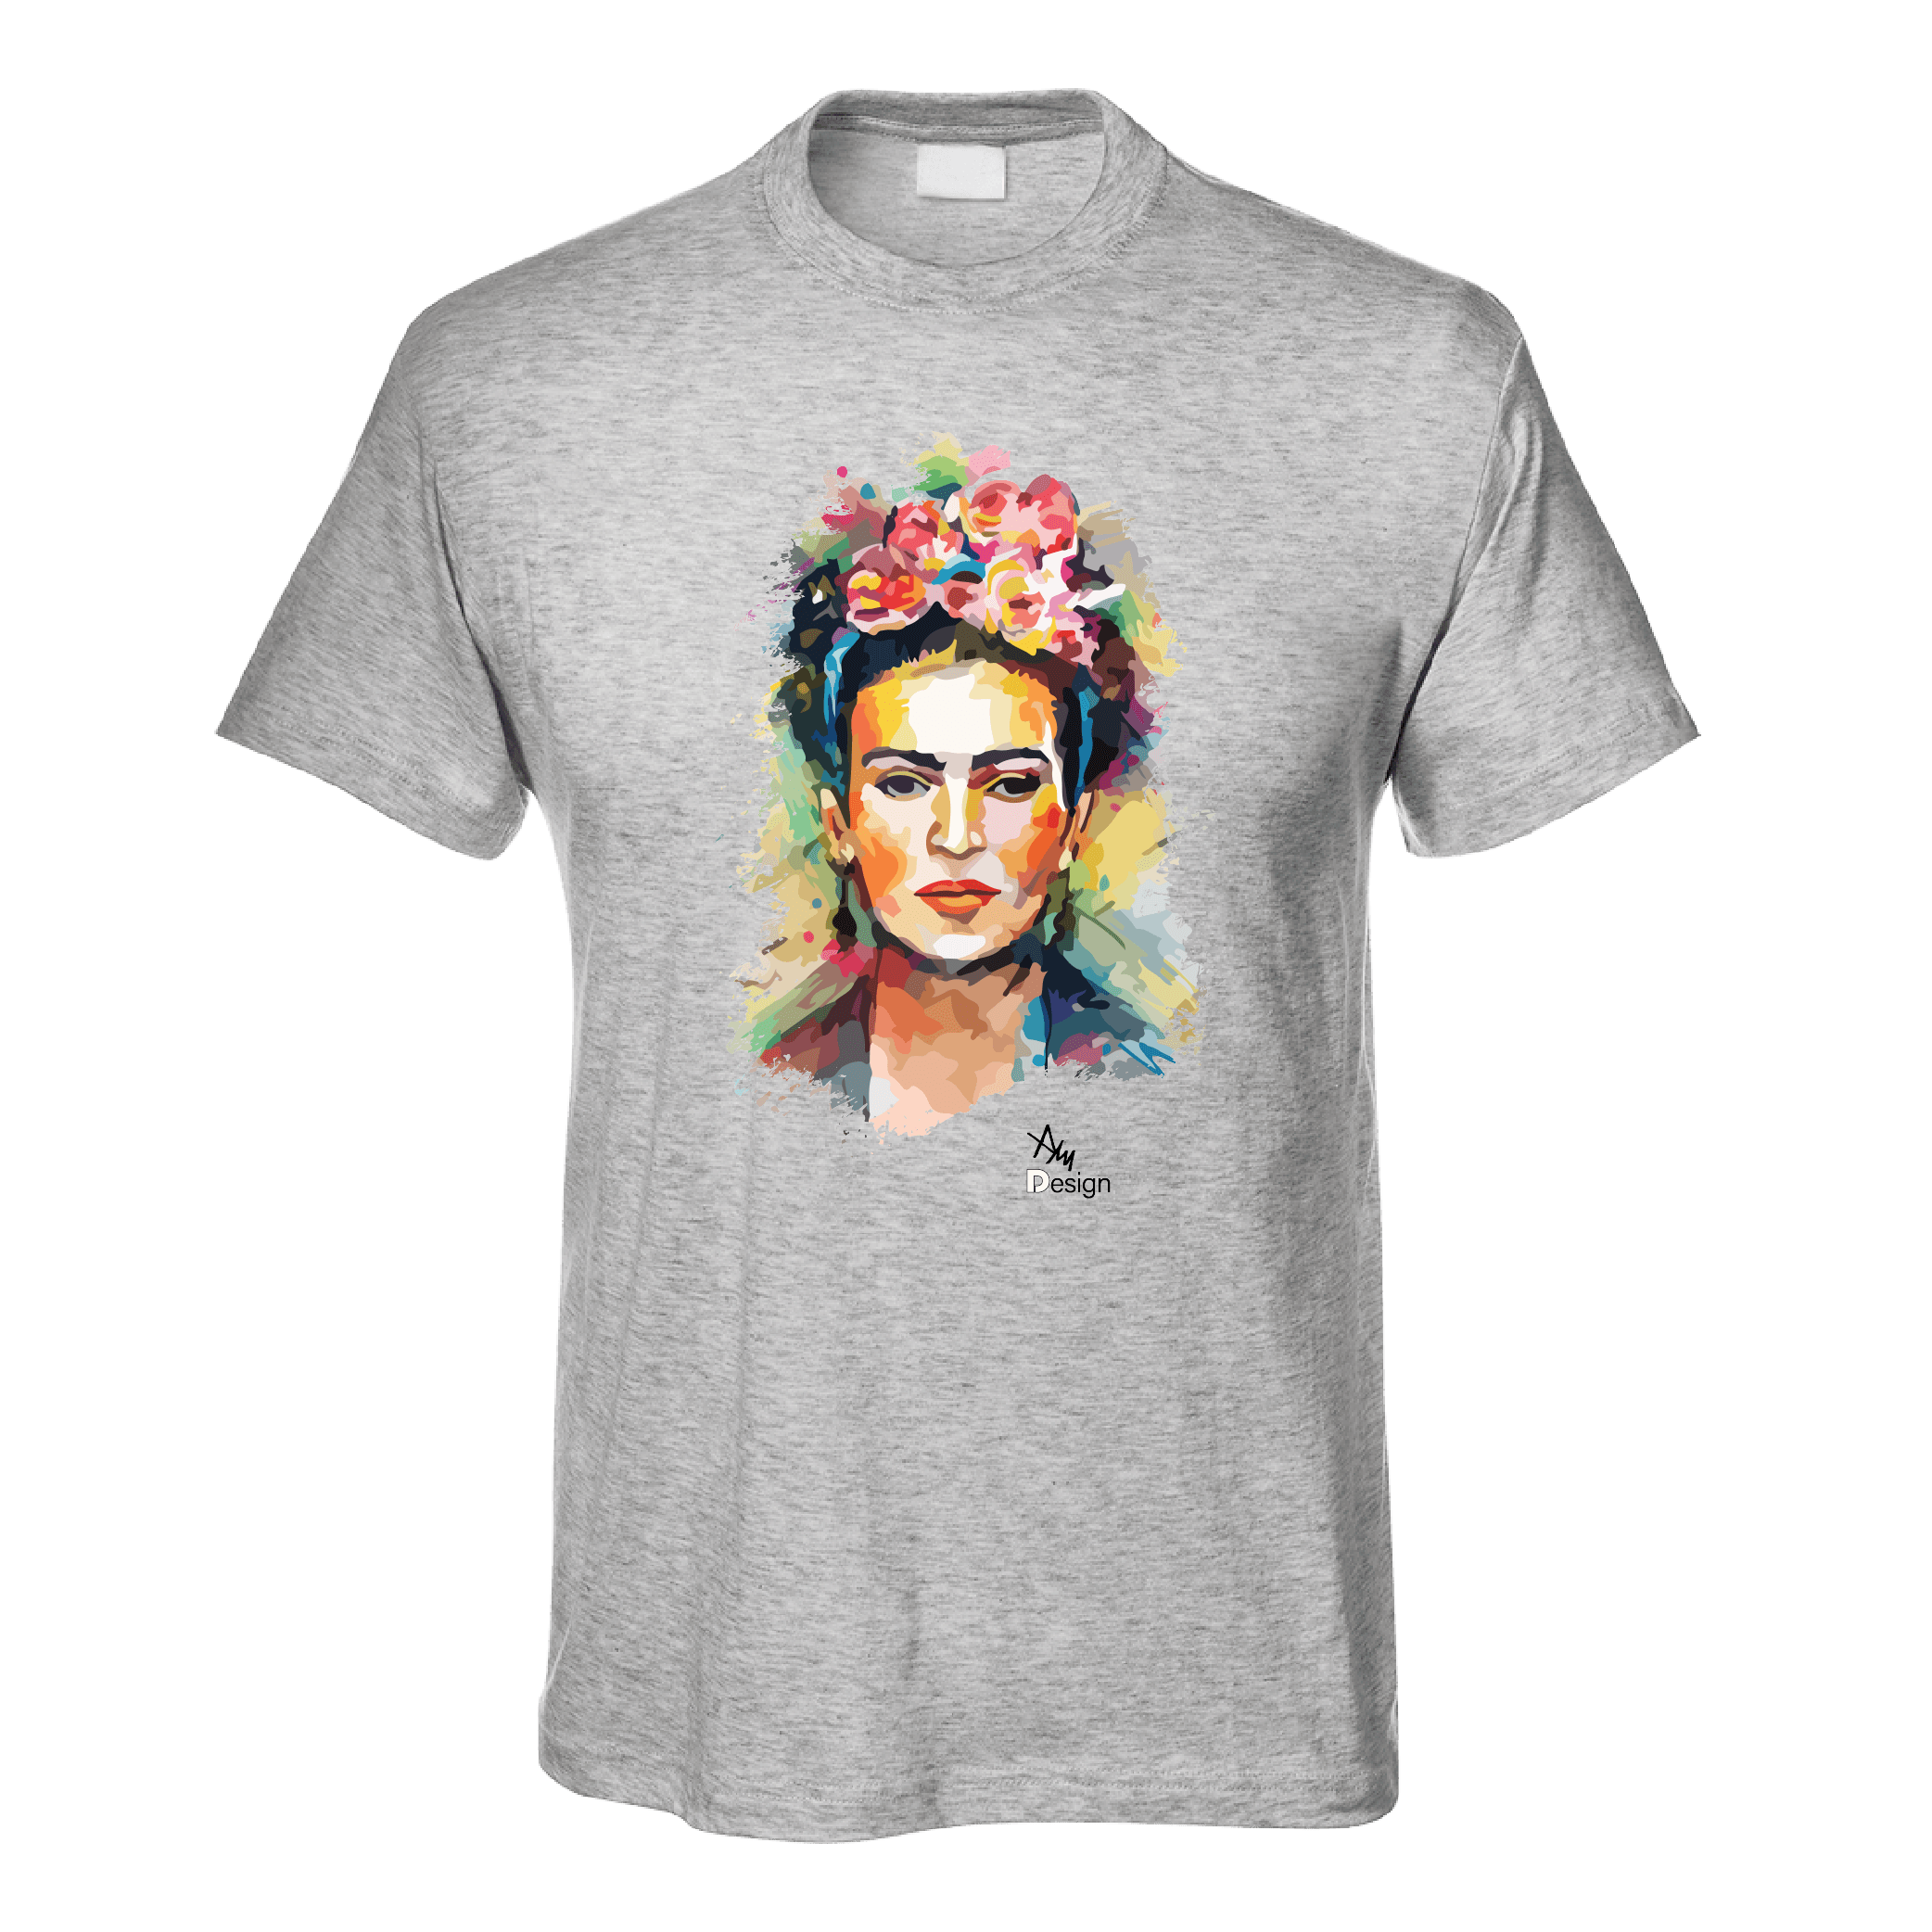 T-Shirt Frida Kahlo-AM Design